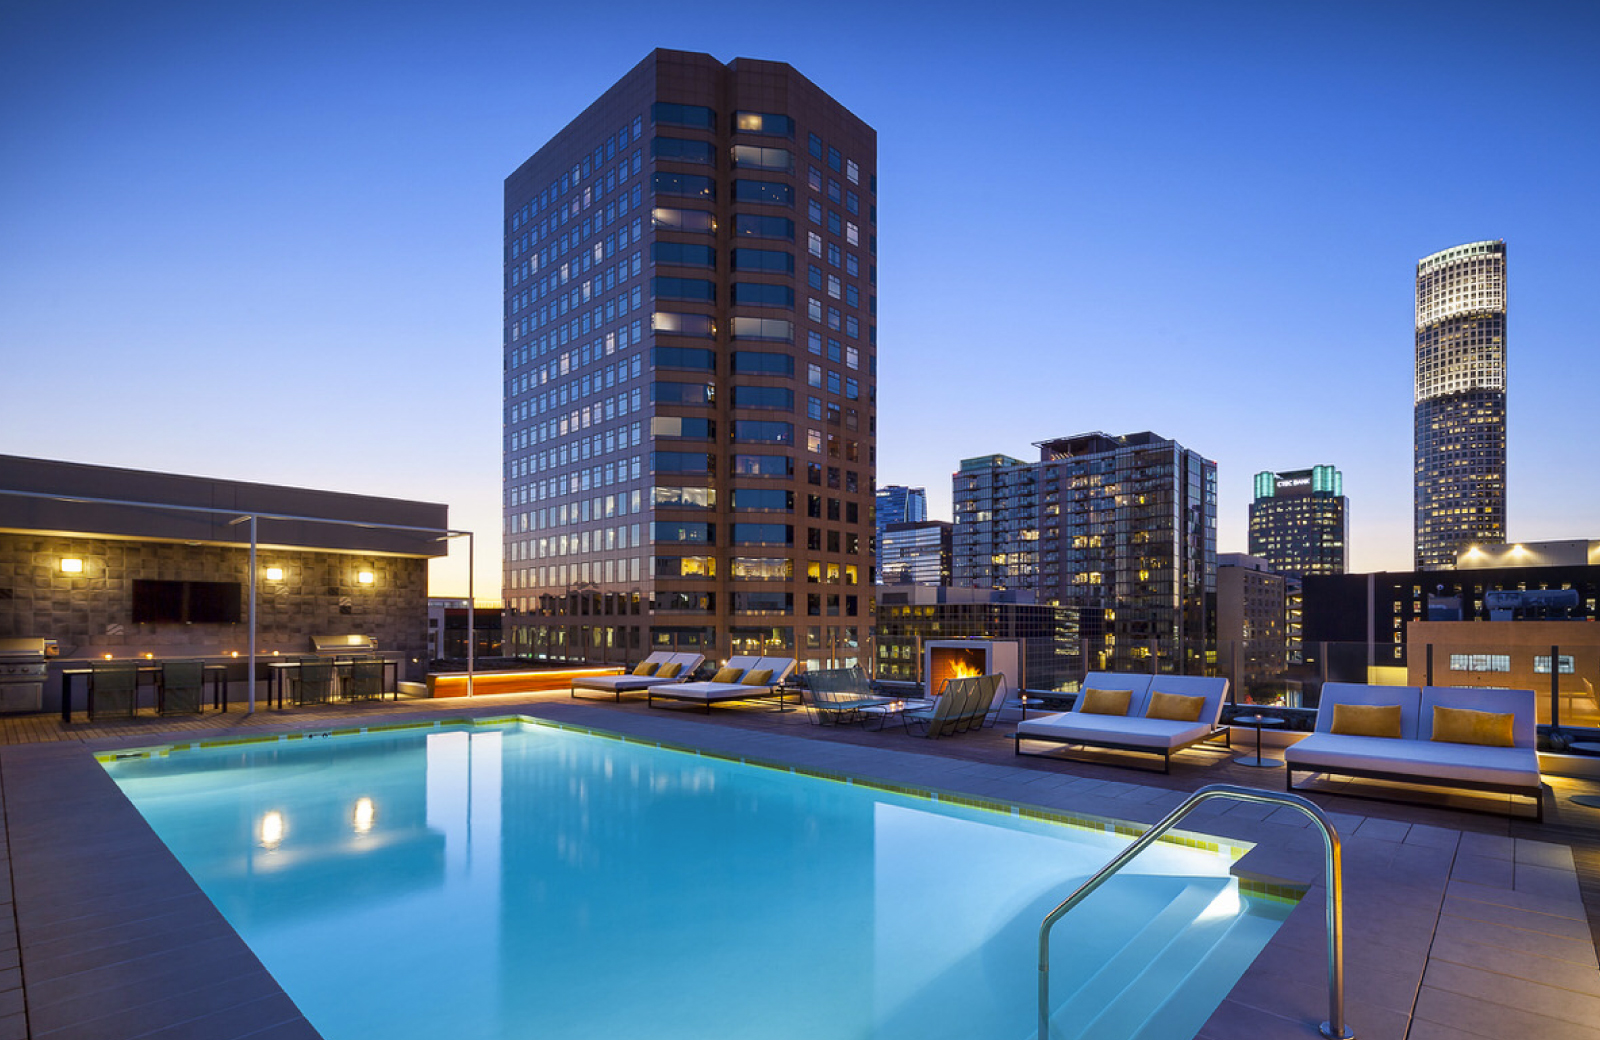 DTLA's Coolest Summer Hotspot: The Pool At Eighth & Grand